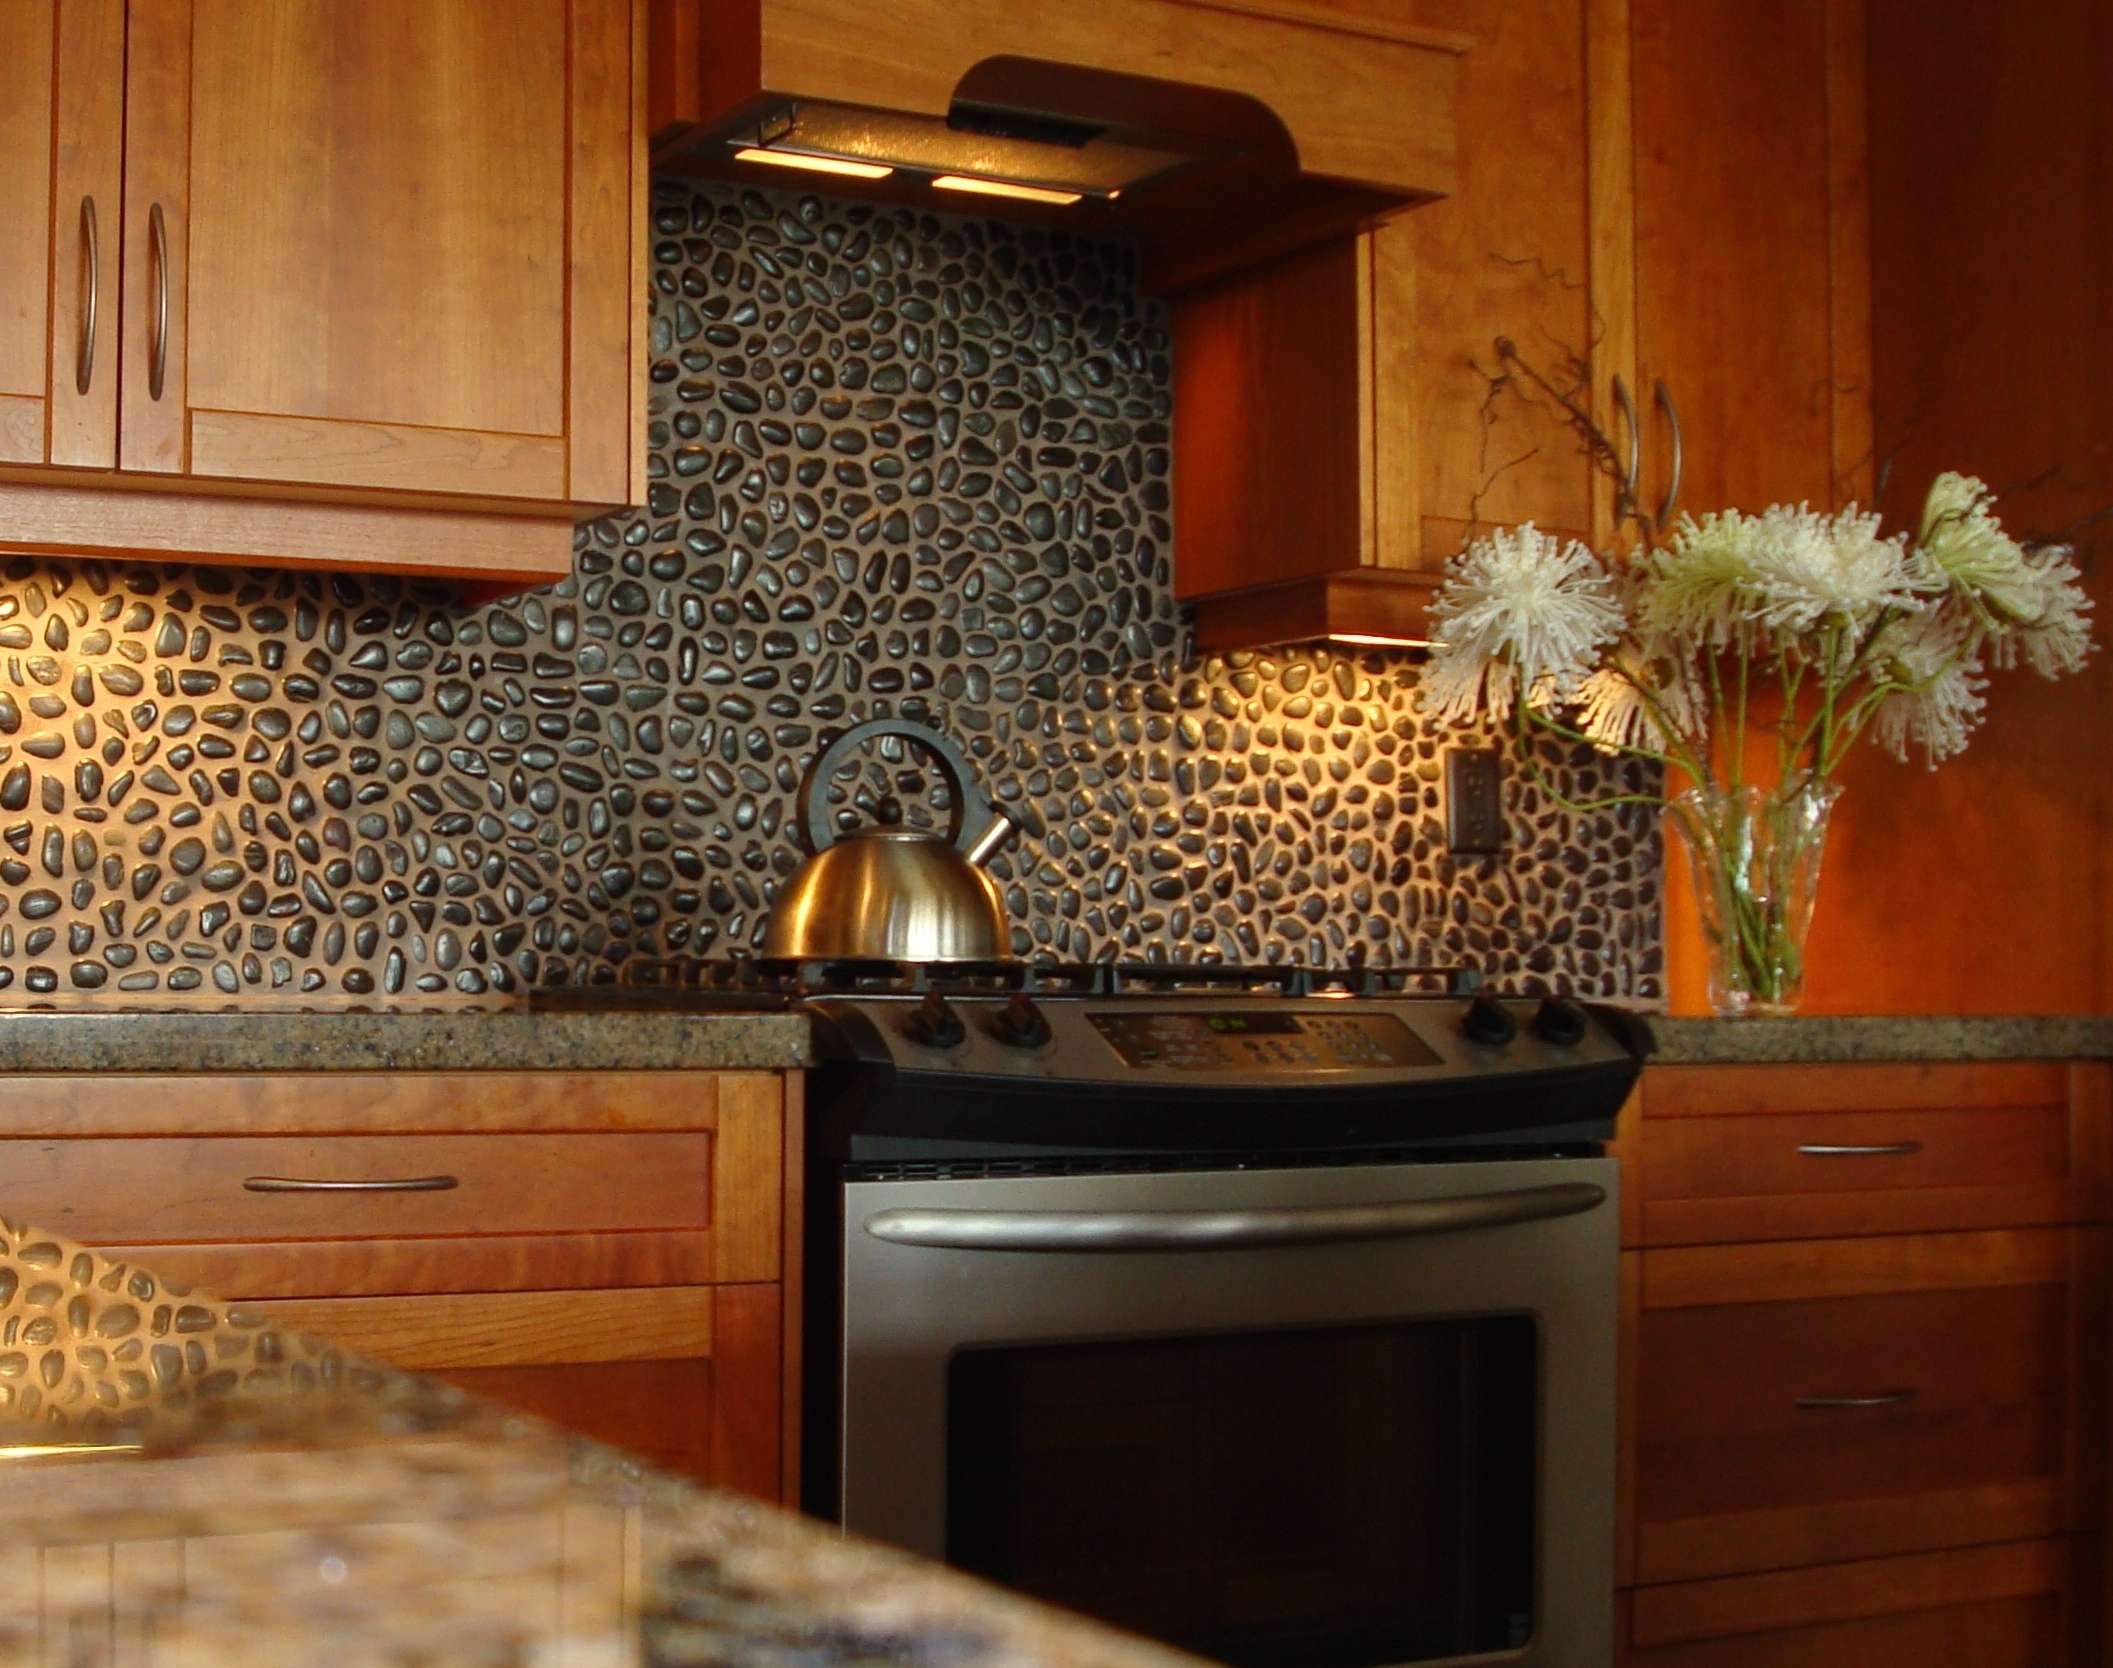 Modular How To Install Kitchen Backsplash On Drywall How To Install Stone regarding How To Install Stone Backsplash